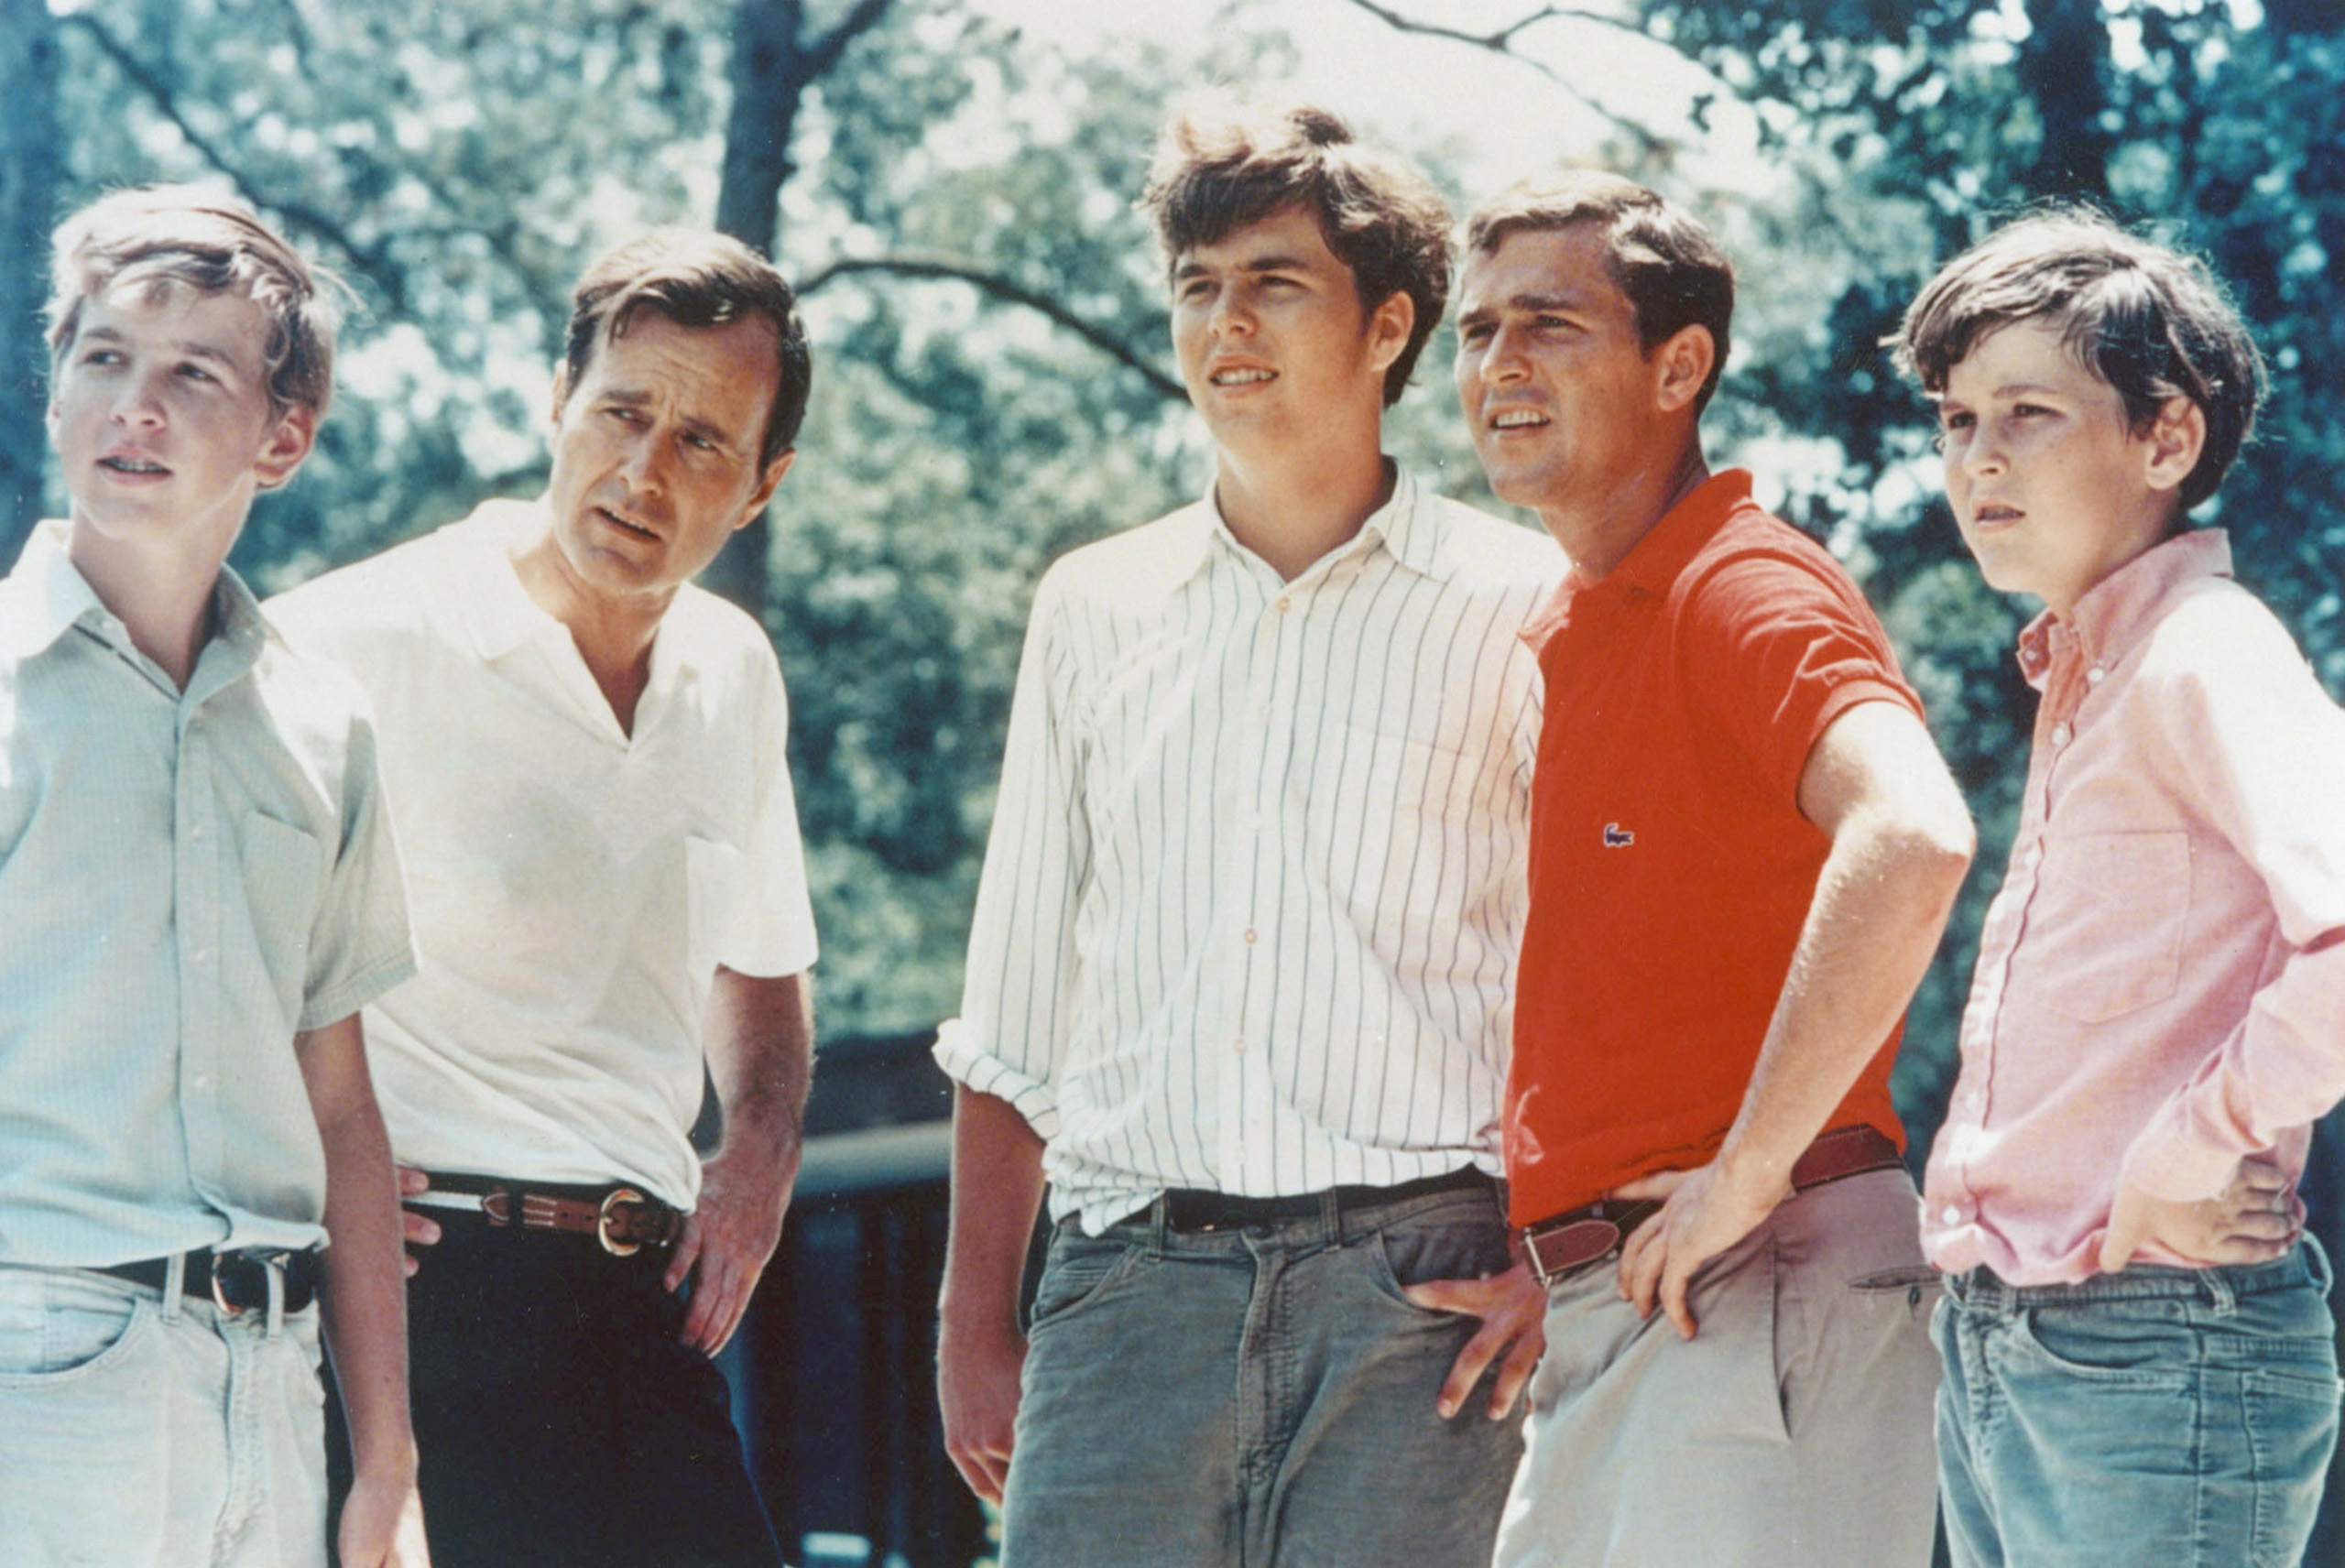 George Bush and his four sons, Neil, Jeb, George W. and Marvin in 1970.